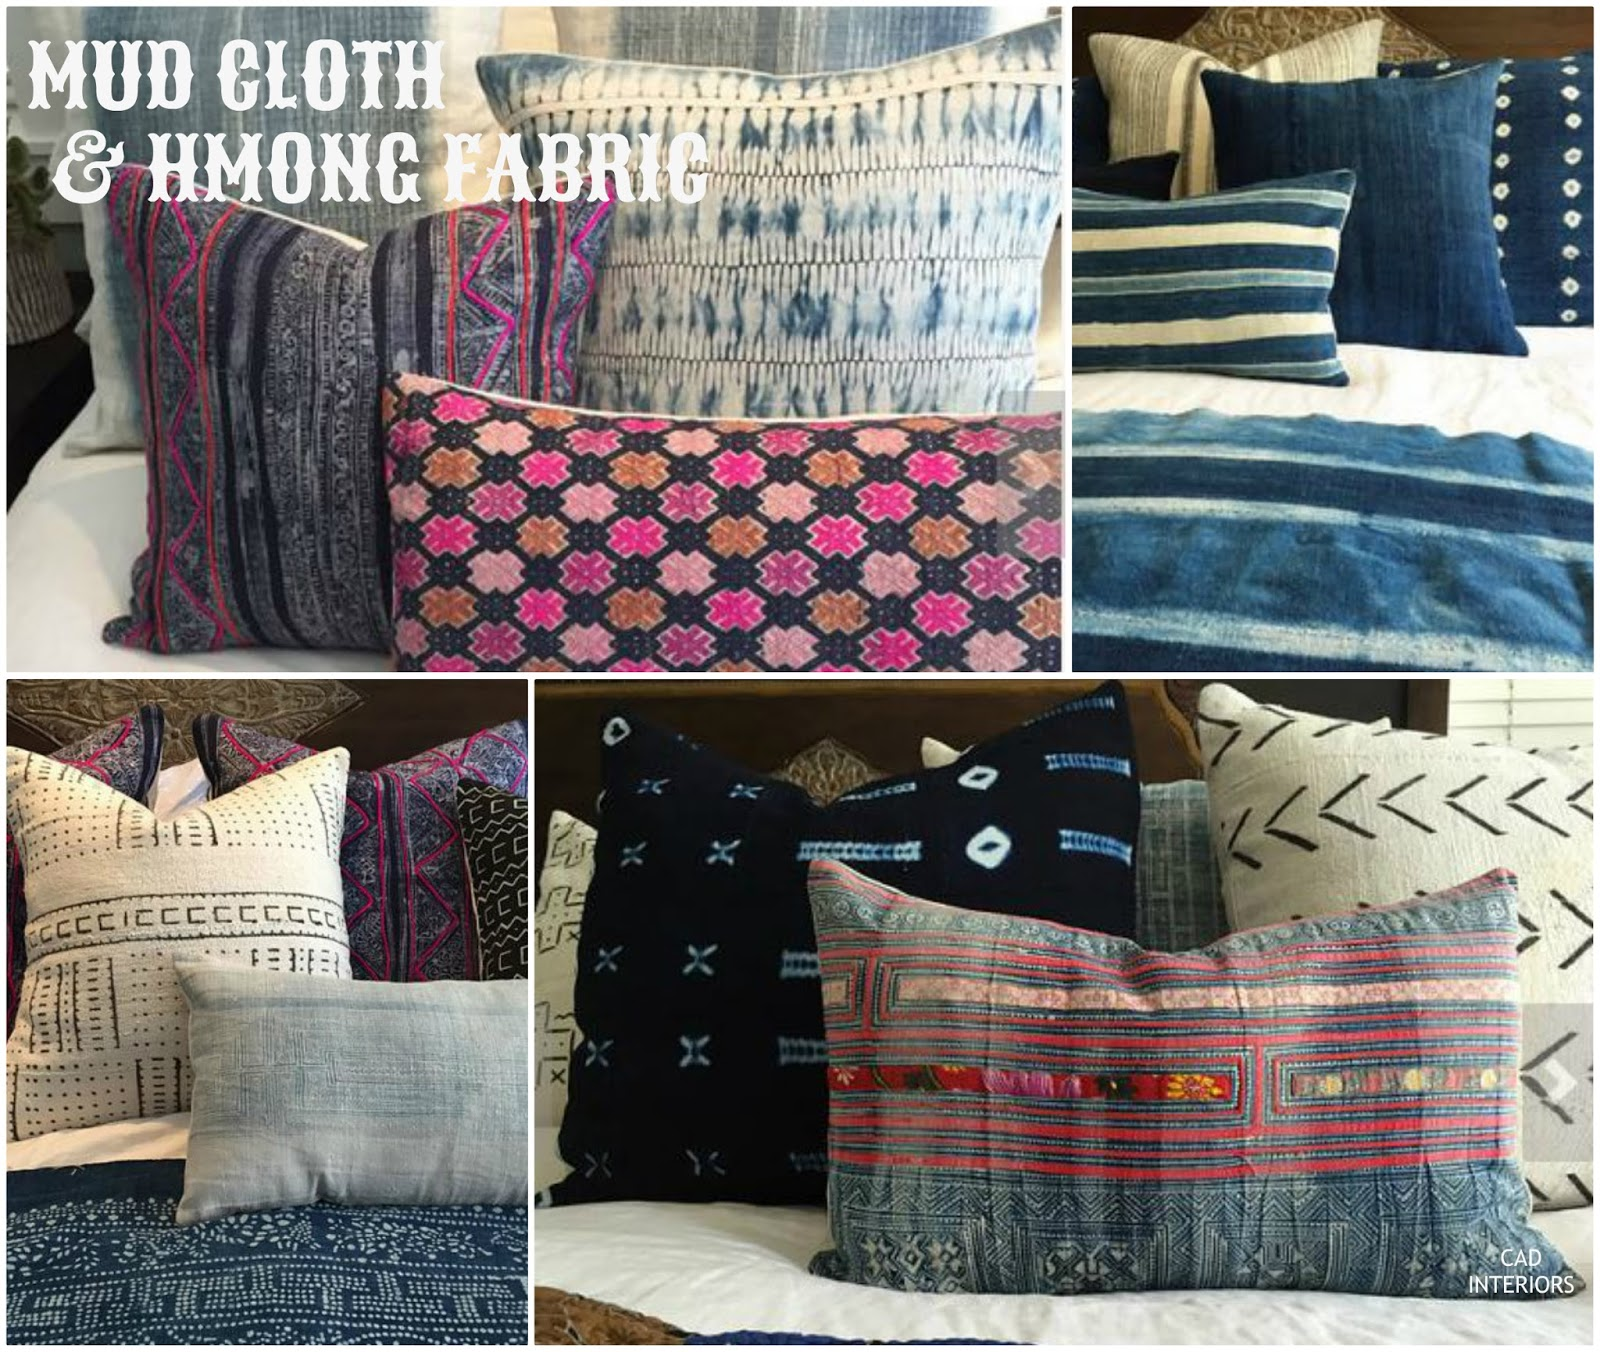 African mud cloth hmong batik fabric pillow covers